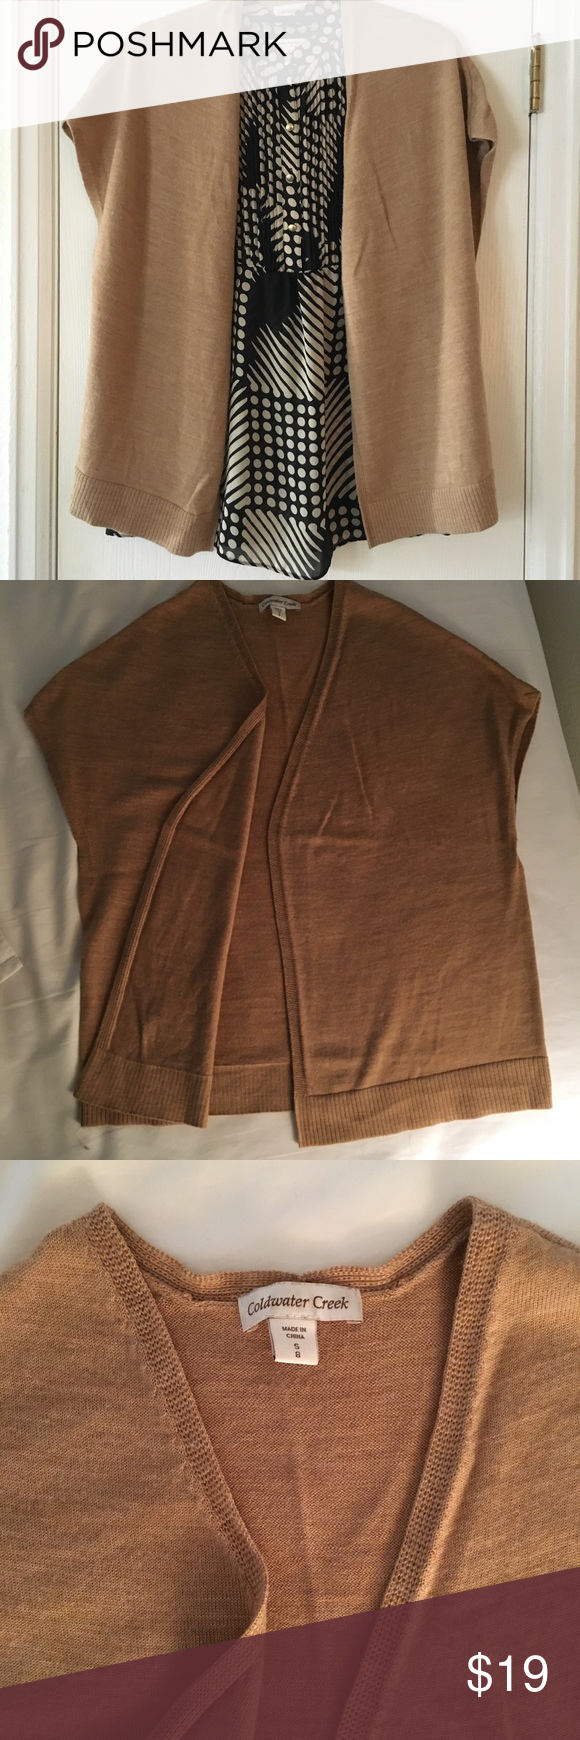 20% off 2+! Wool blend sweater Wool blend camel color sweater wrap, perfect for fall weather. 20% off when you bundle with another item. Coldwater Creek Sweaters Cardigans